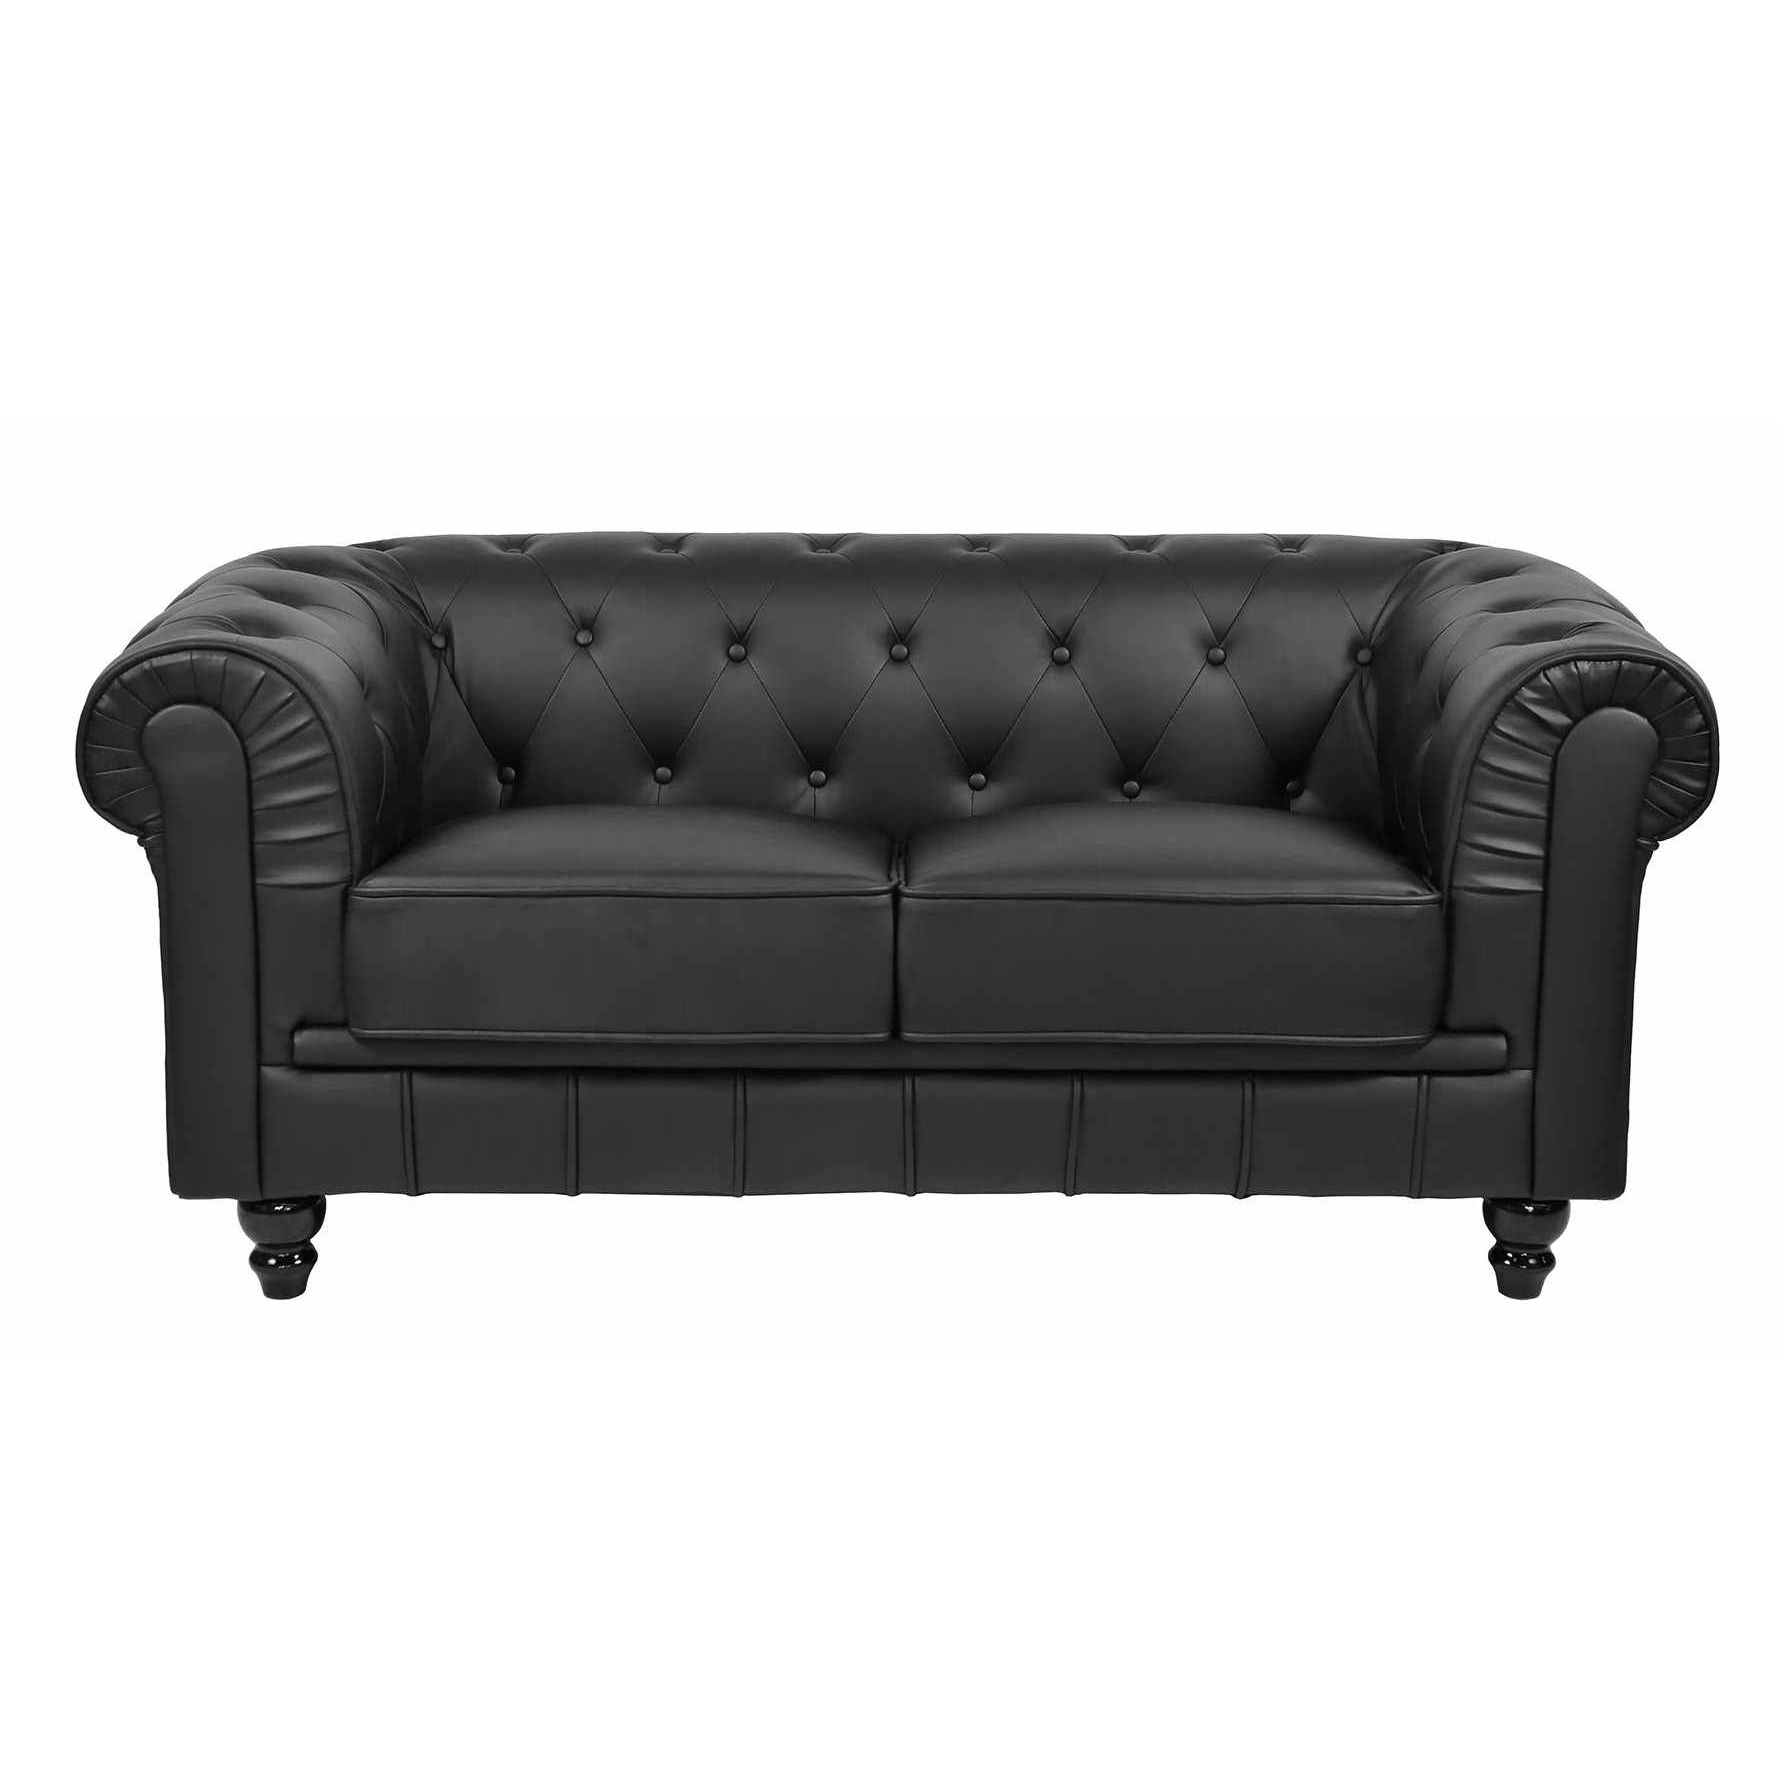 deco in paris canape 2 places noir chesterfield can chester 2p pu noir. Black Bedroom Furniture Sets. Home Design Ideas